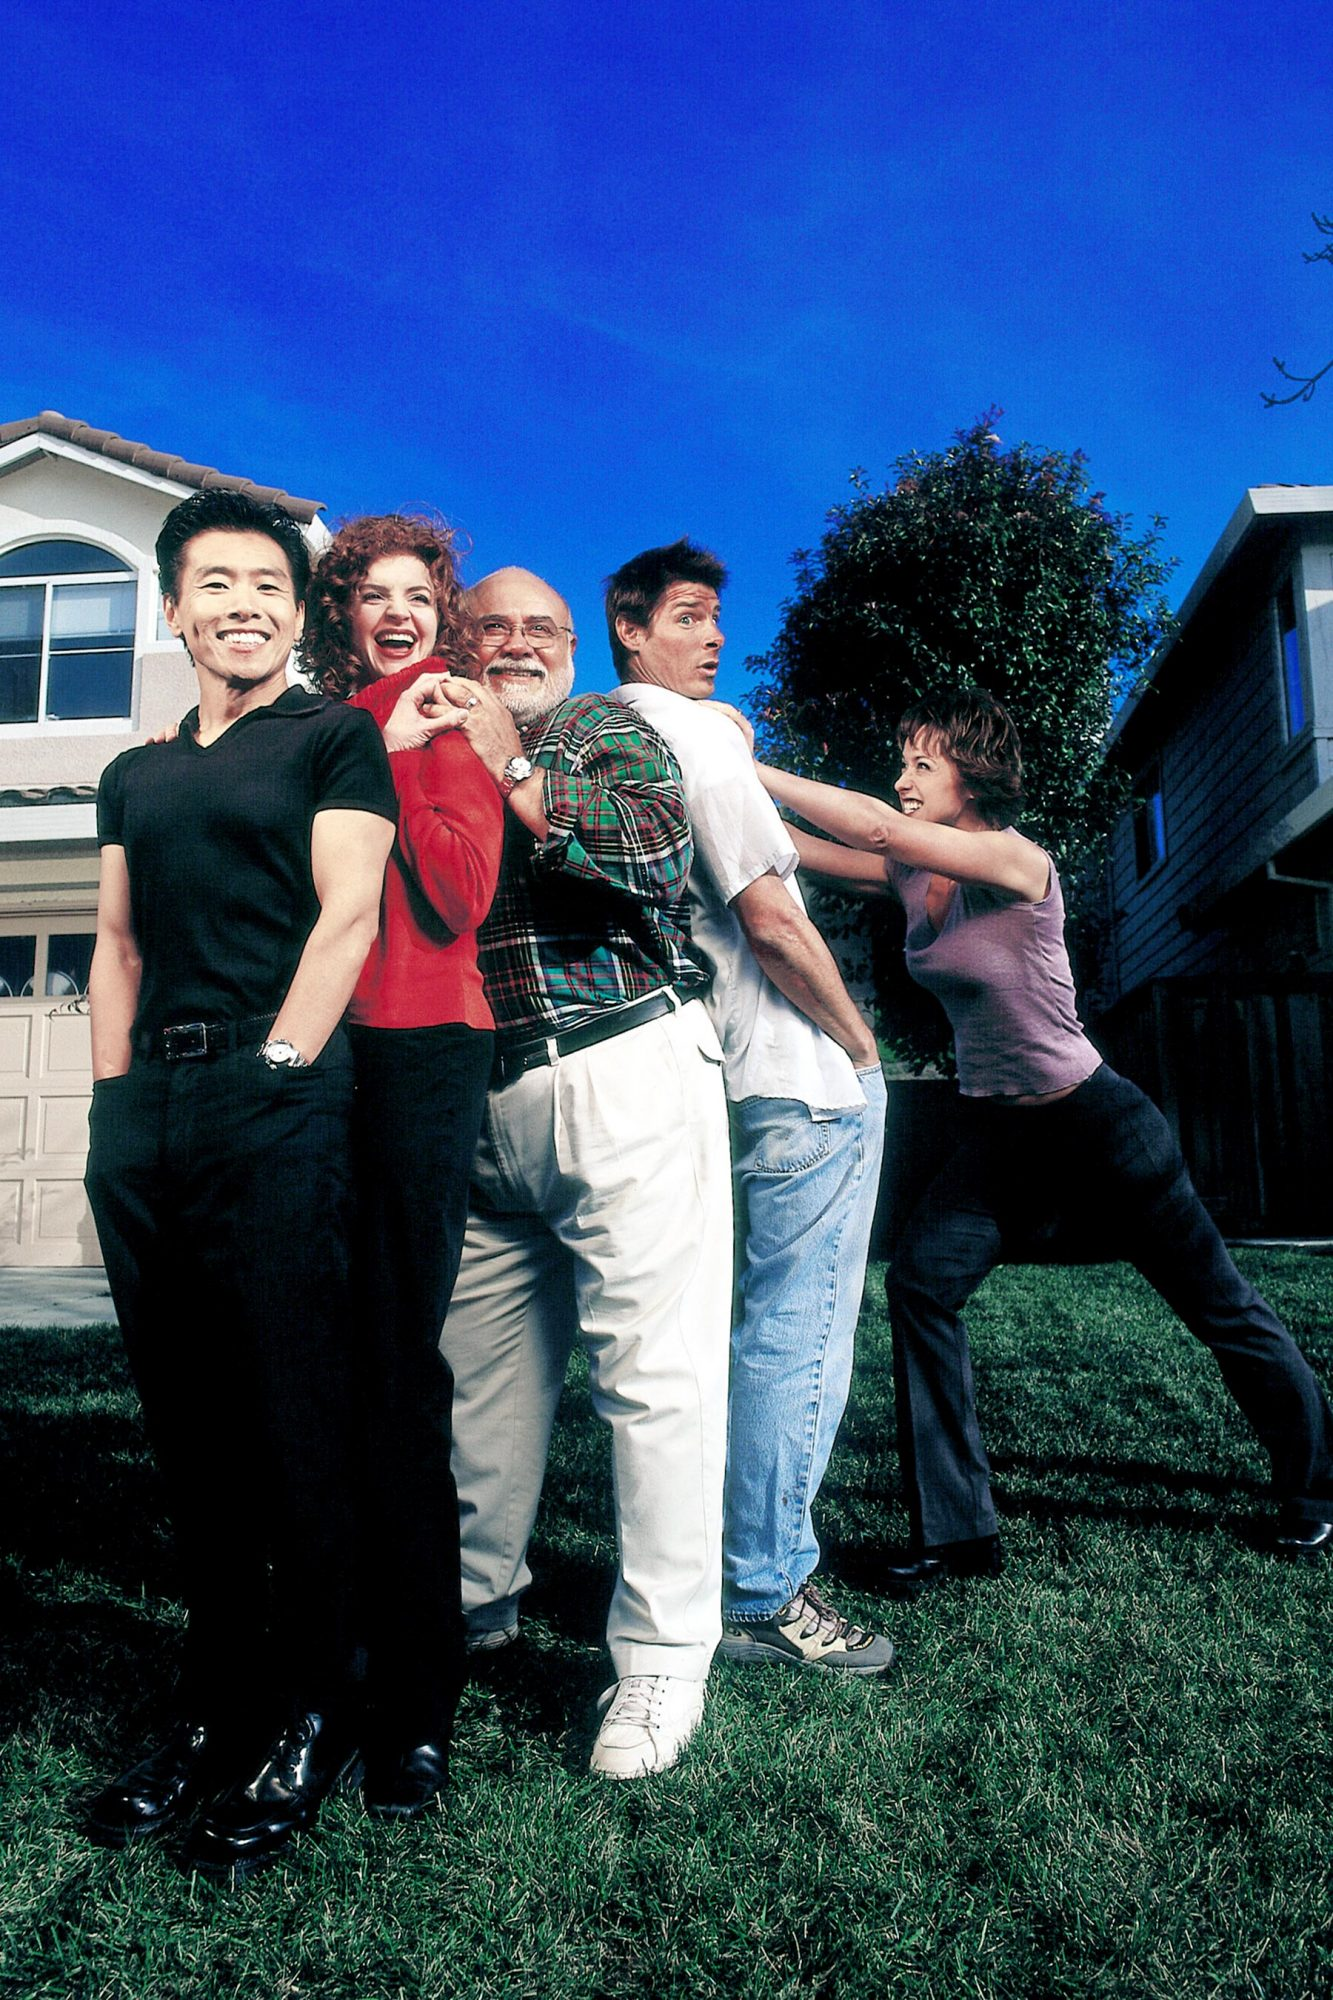 TRADING SPACES, Vern Yip, Larie Smith, Frank Bielec, Ty Pennington, Paige Davis, 2000-08, © A. Smith